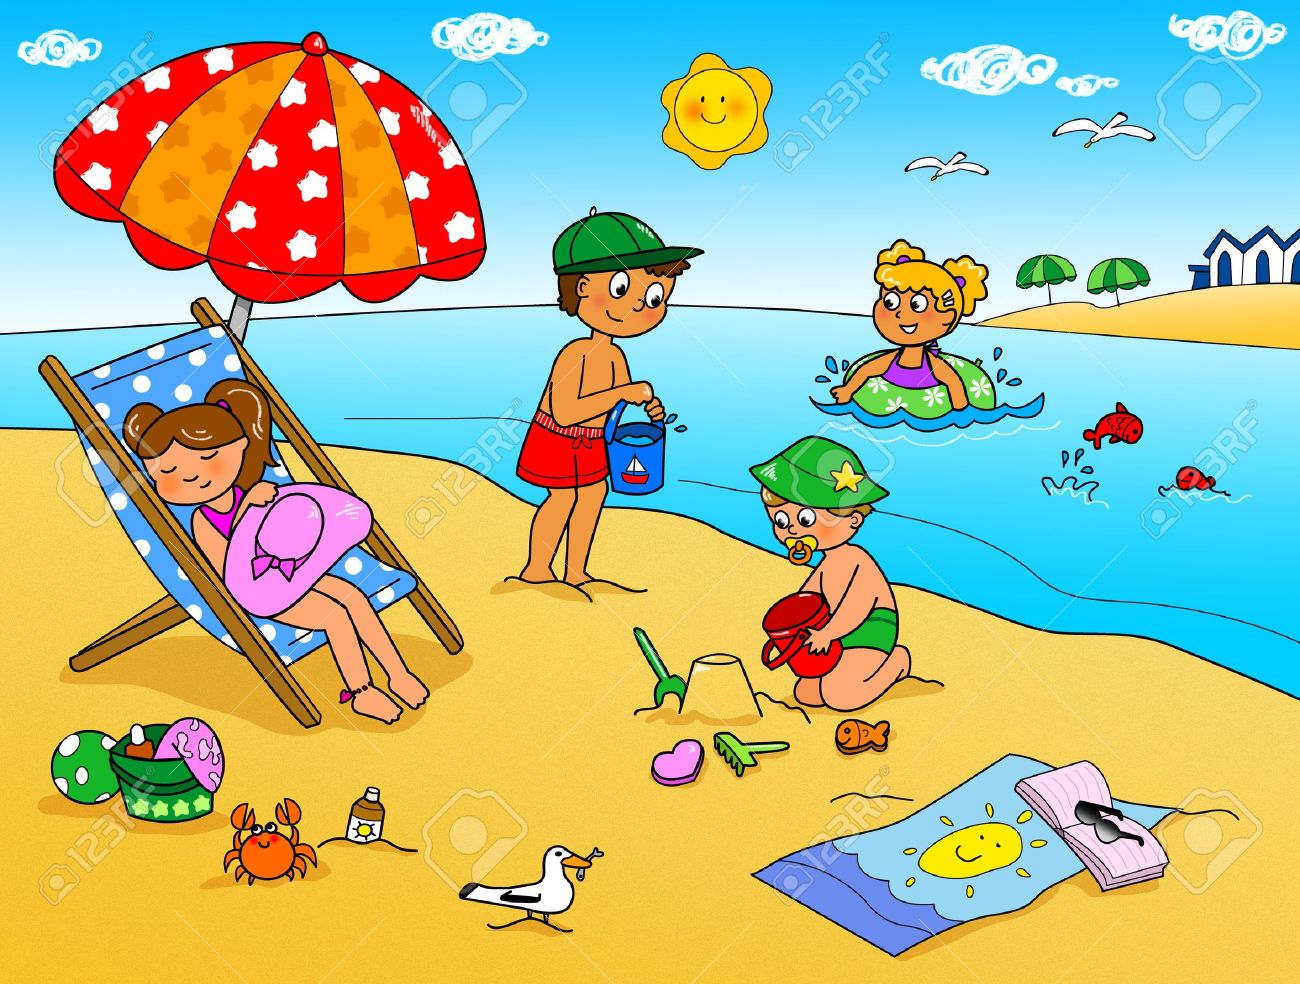 Summer holidays, children playing with the sand at the beach Stock Photo - 13662819